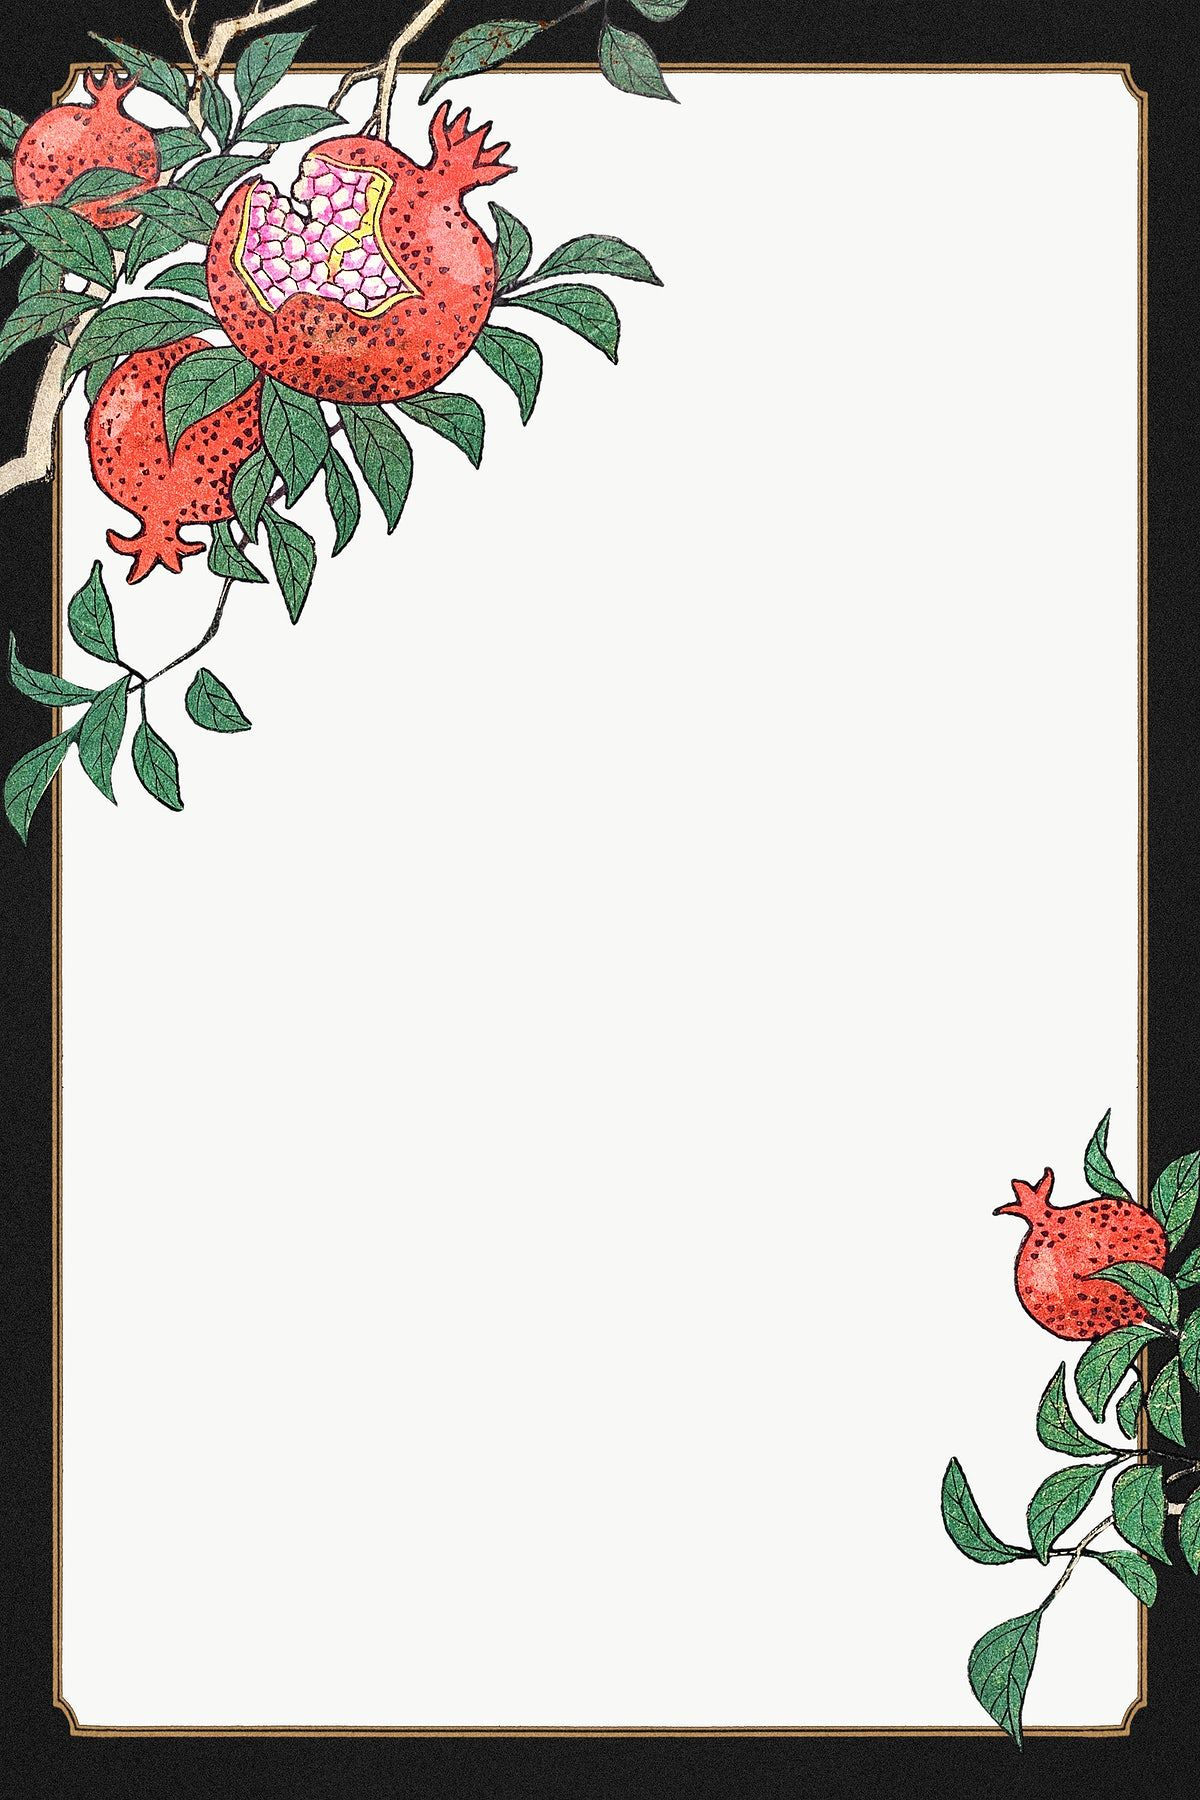 Pomegranate border frame design element | free image by ...